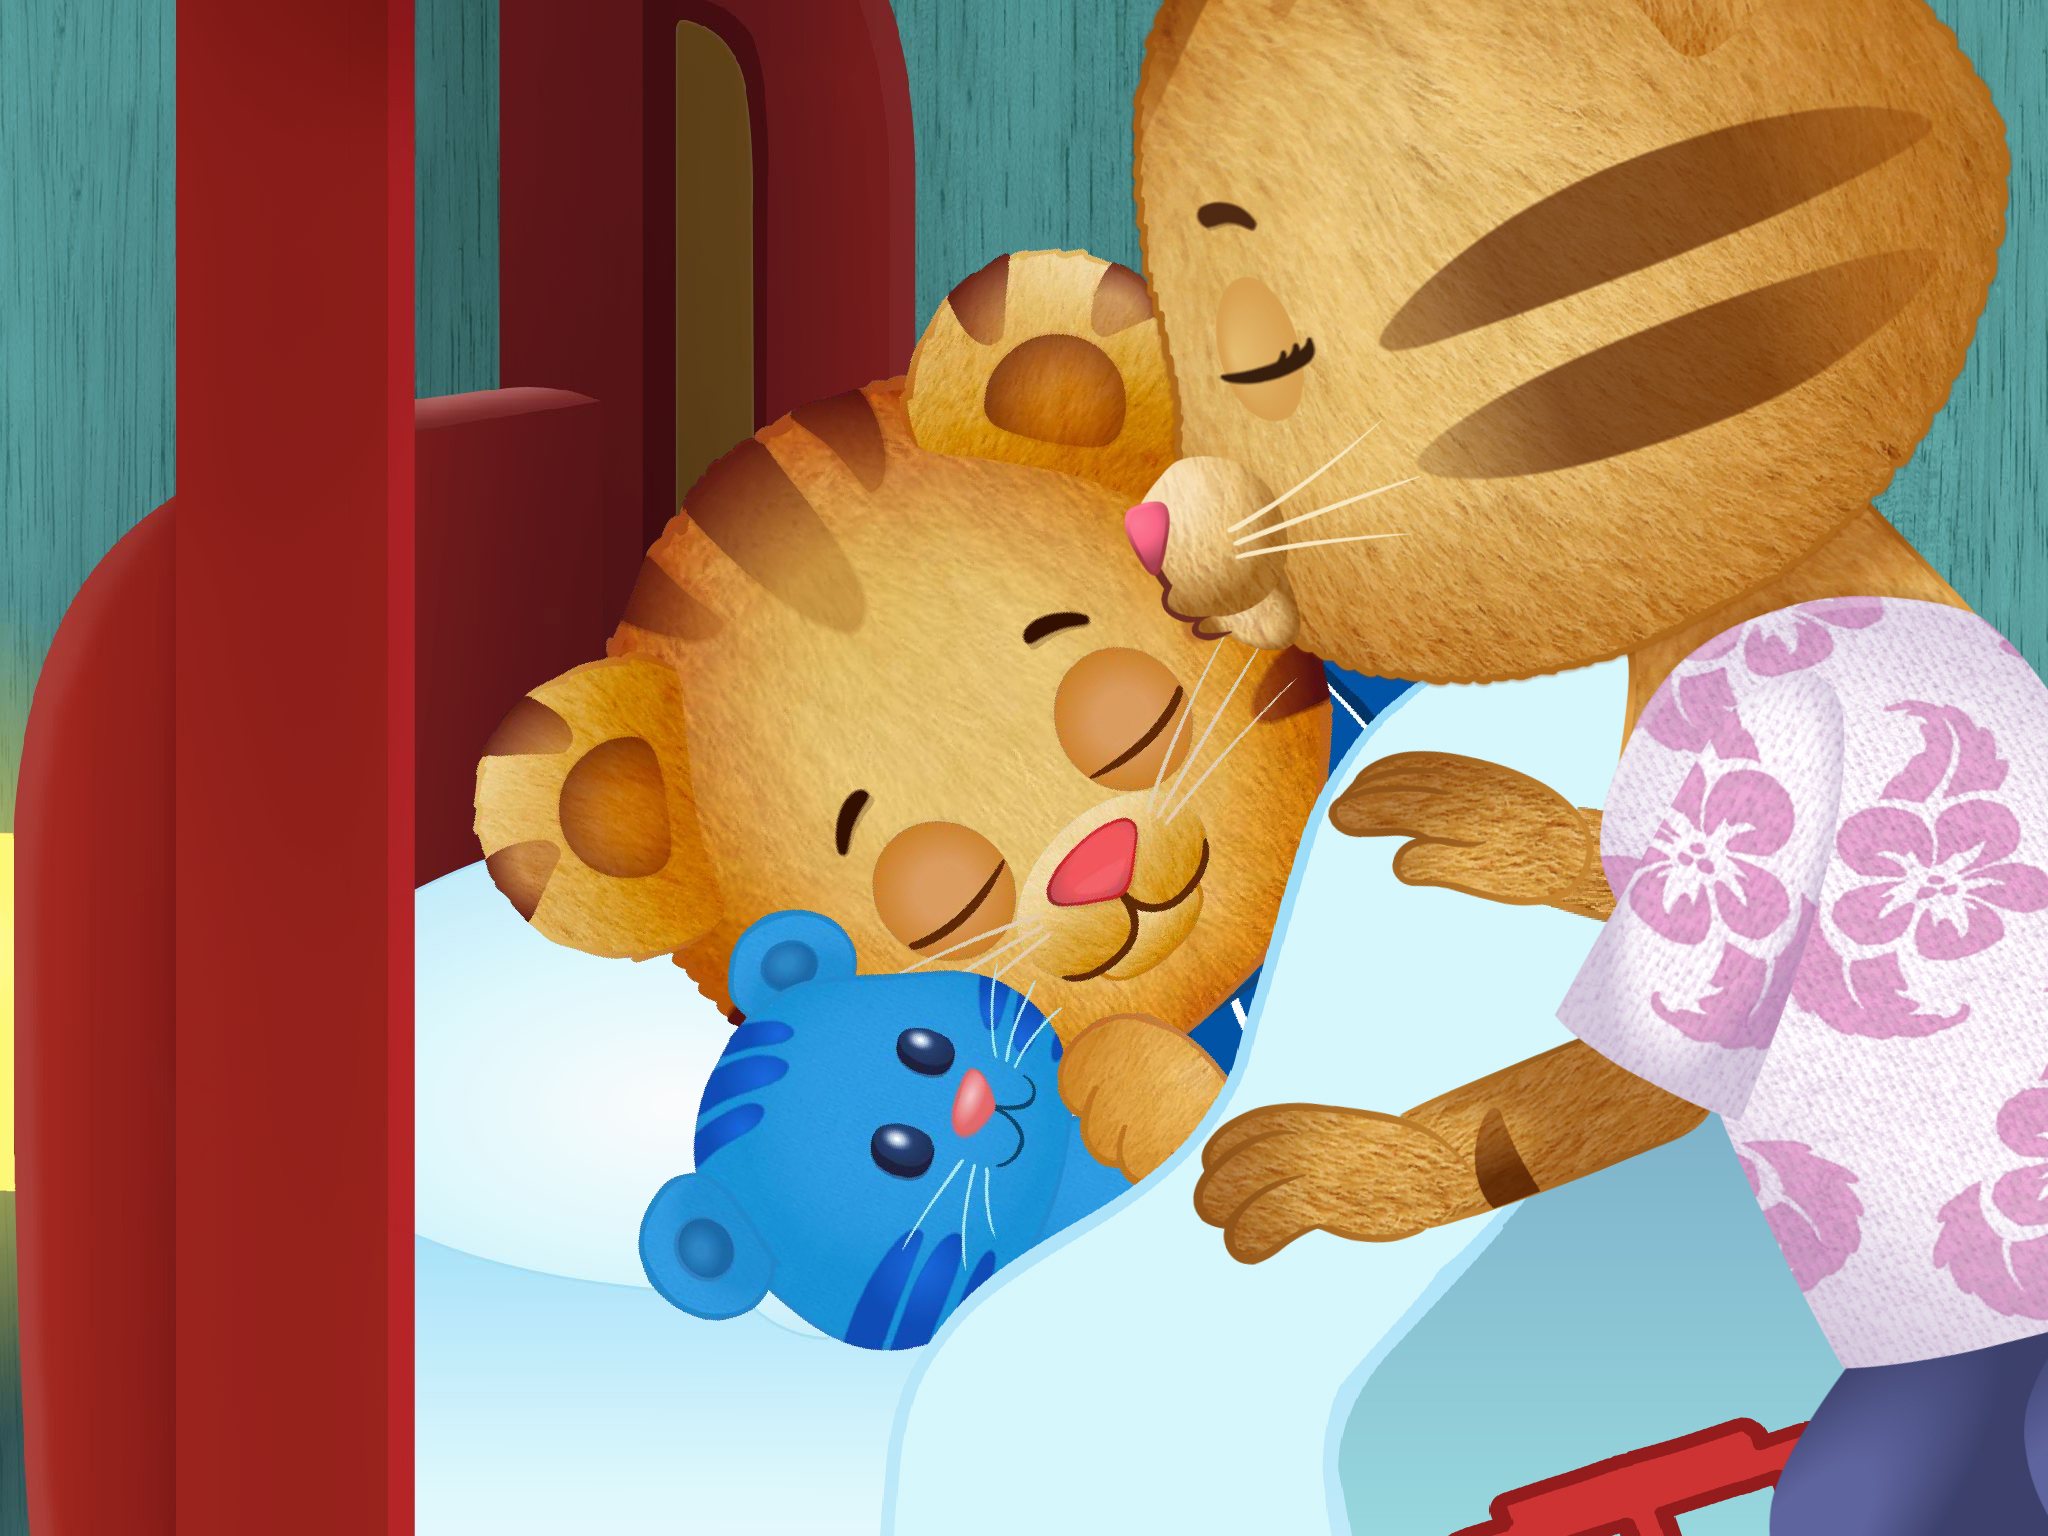 Pbs Kids Launches Second Daniel Tiger S Neighborhood App For Iphone Ipad Ipod Touch Business Wire